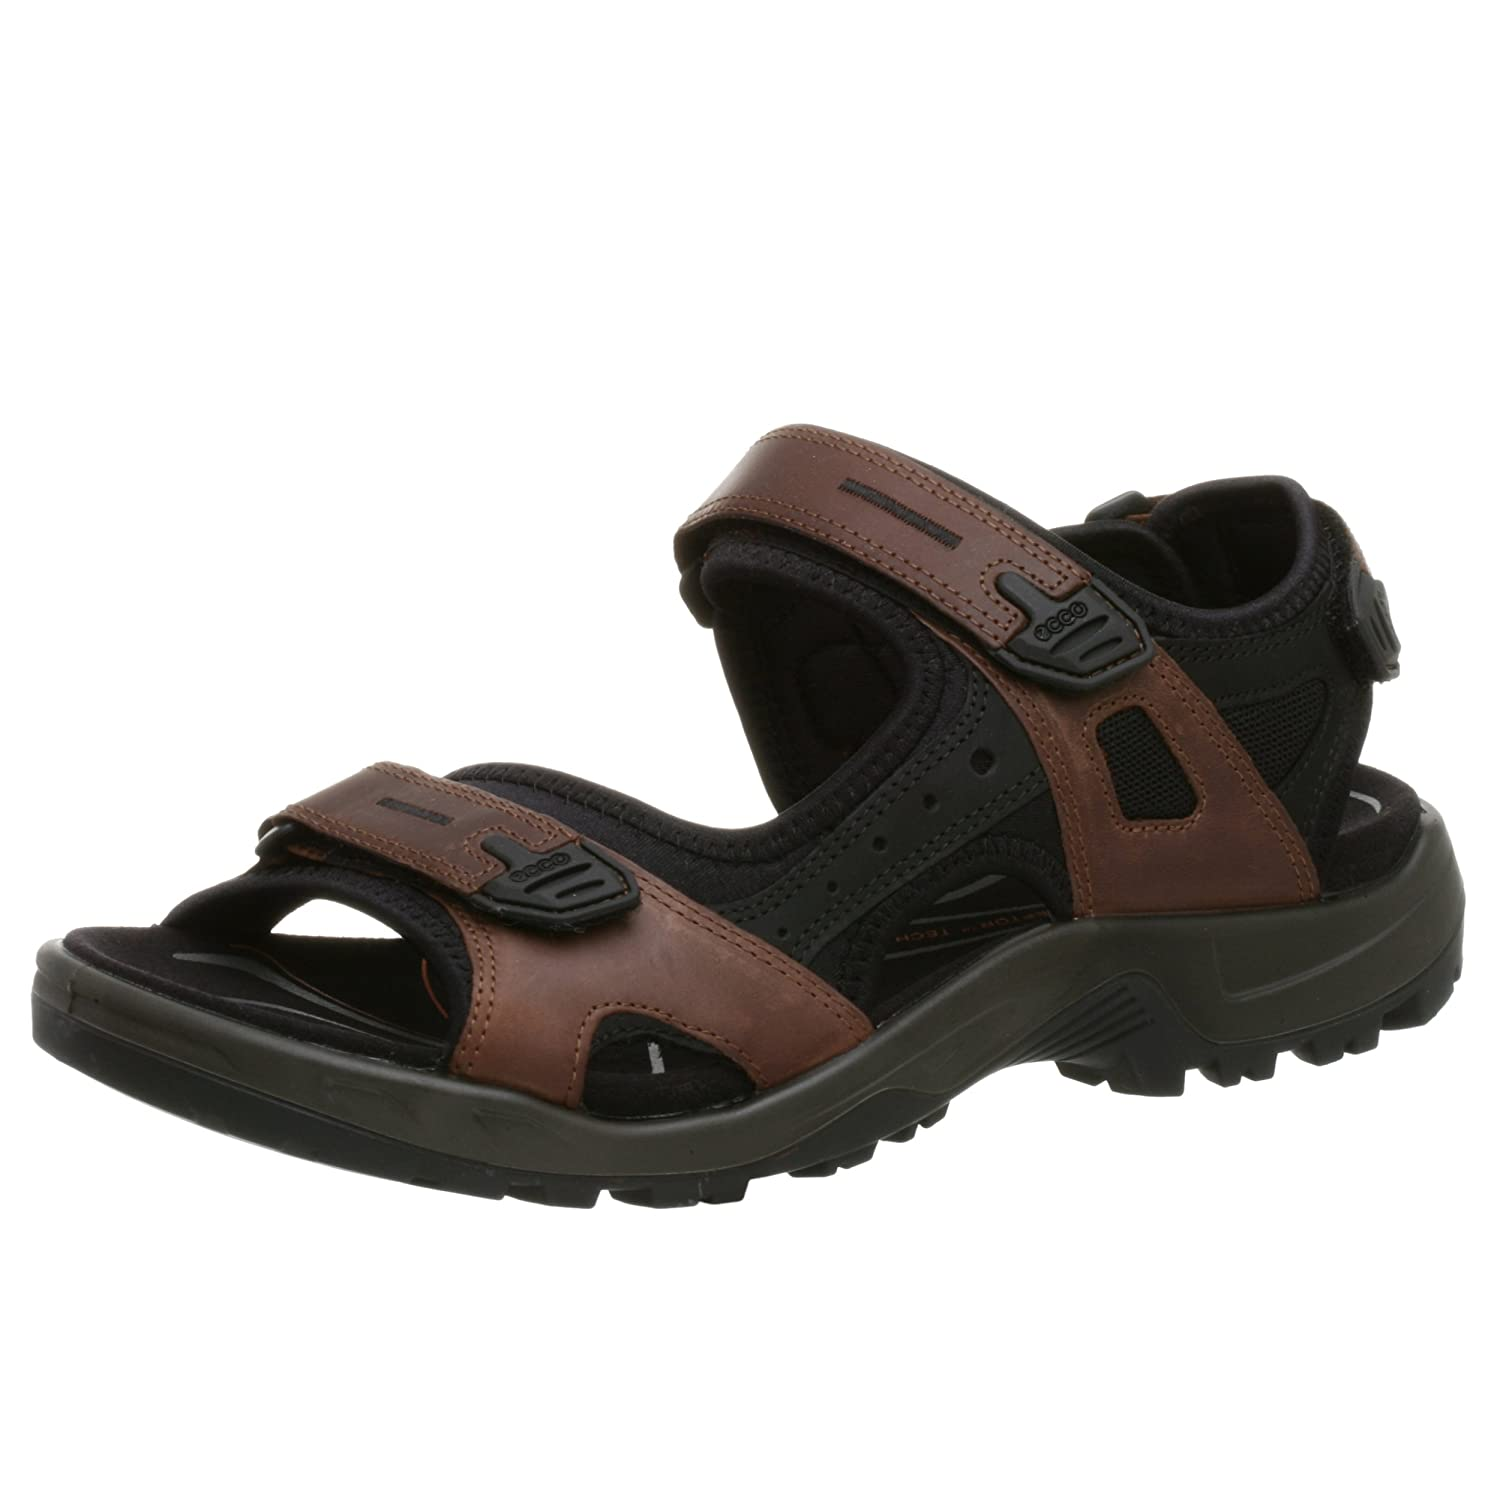 094c3245ea ECCO Men's Yucatan outdoor offroad hiking sandal